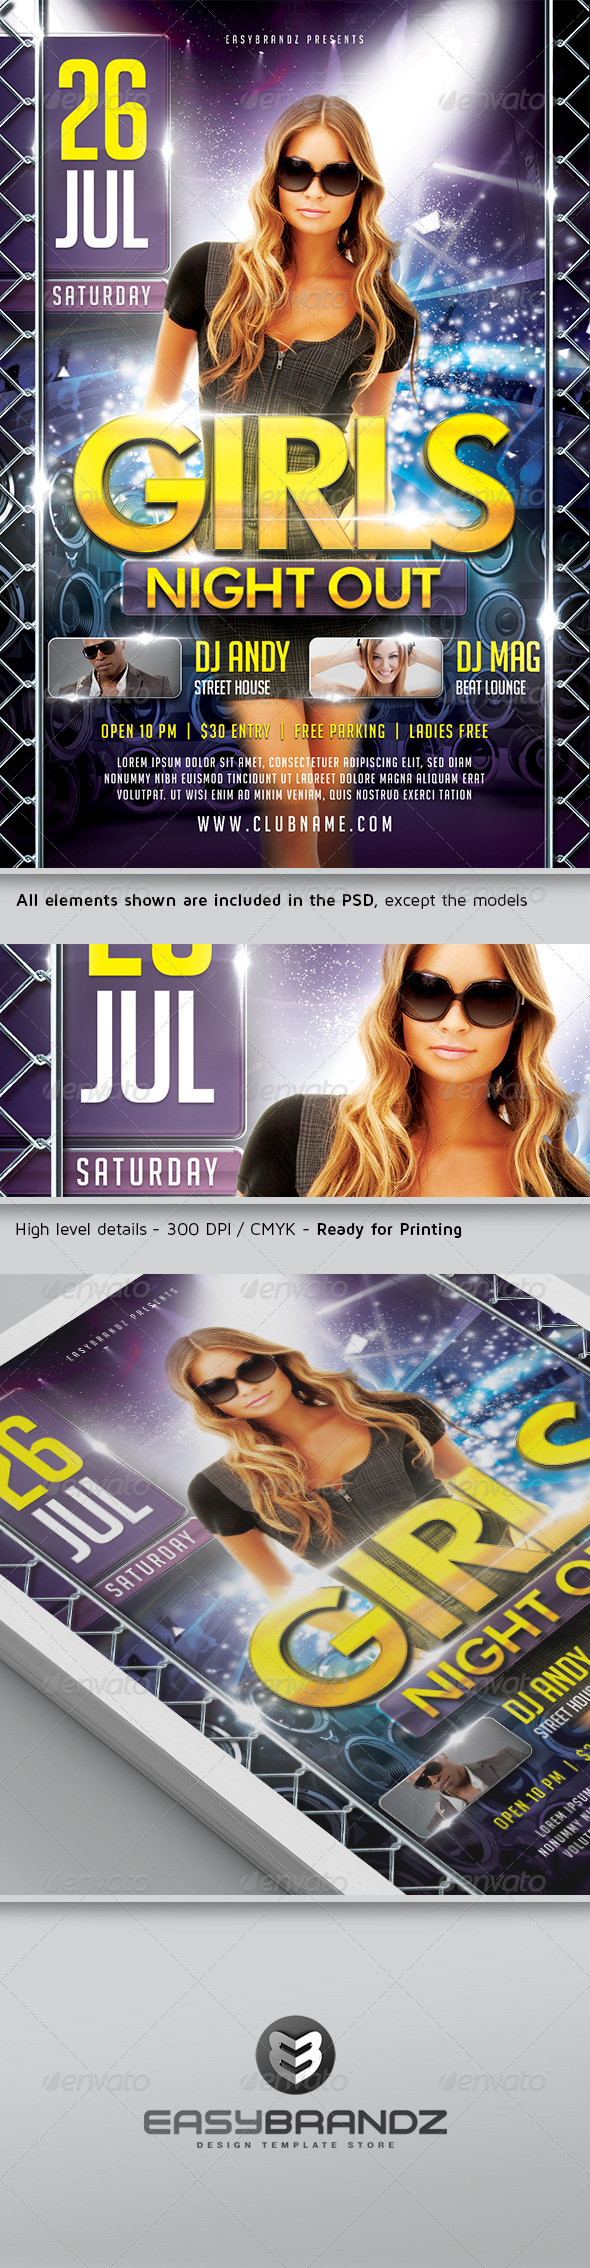 Girls Night Out Flyer Template - Events Flyers